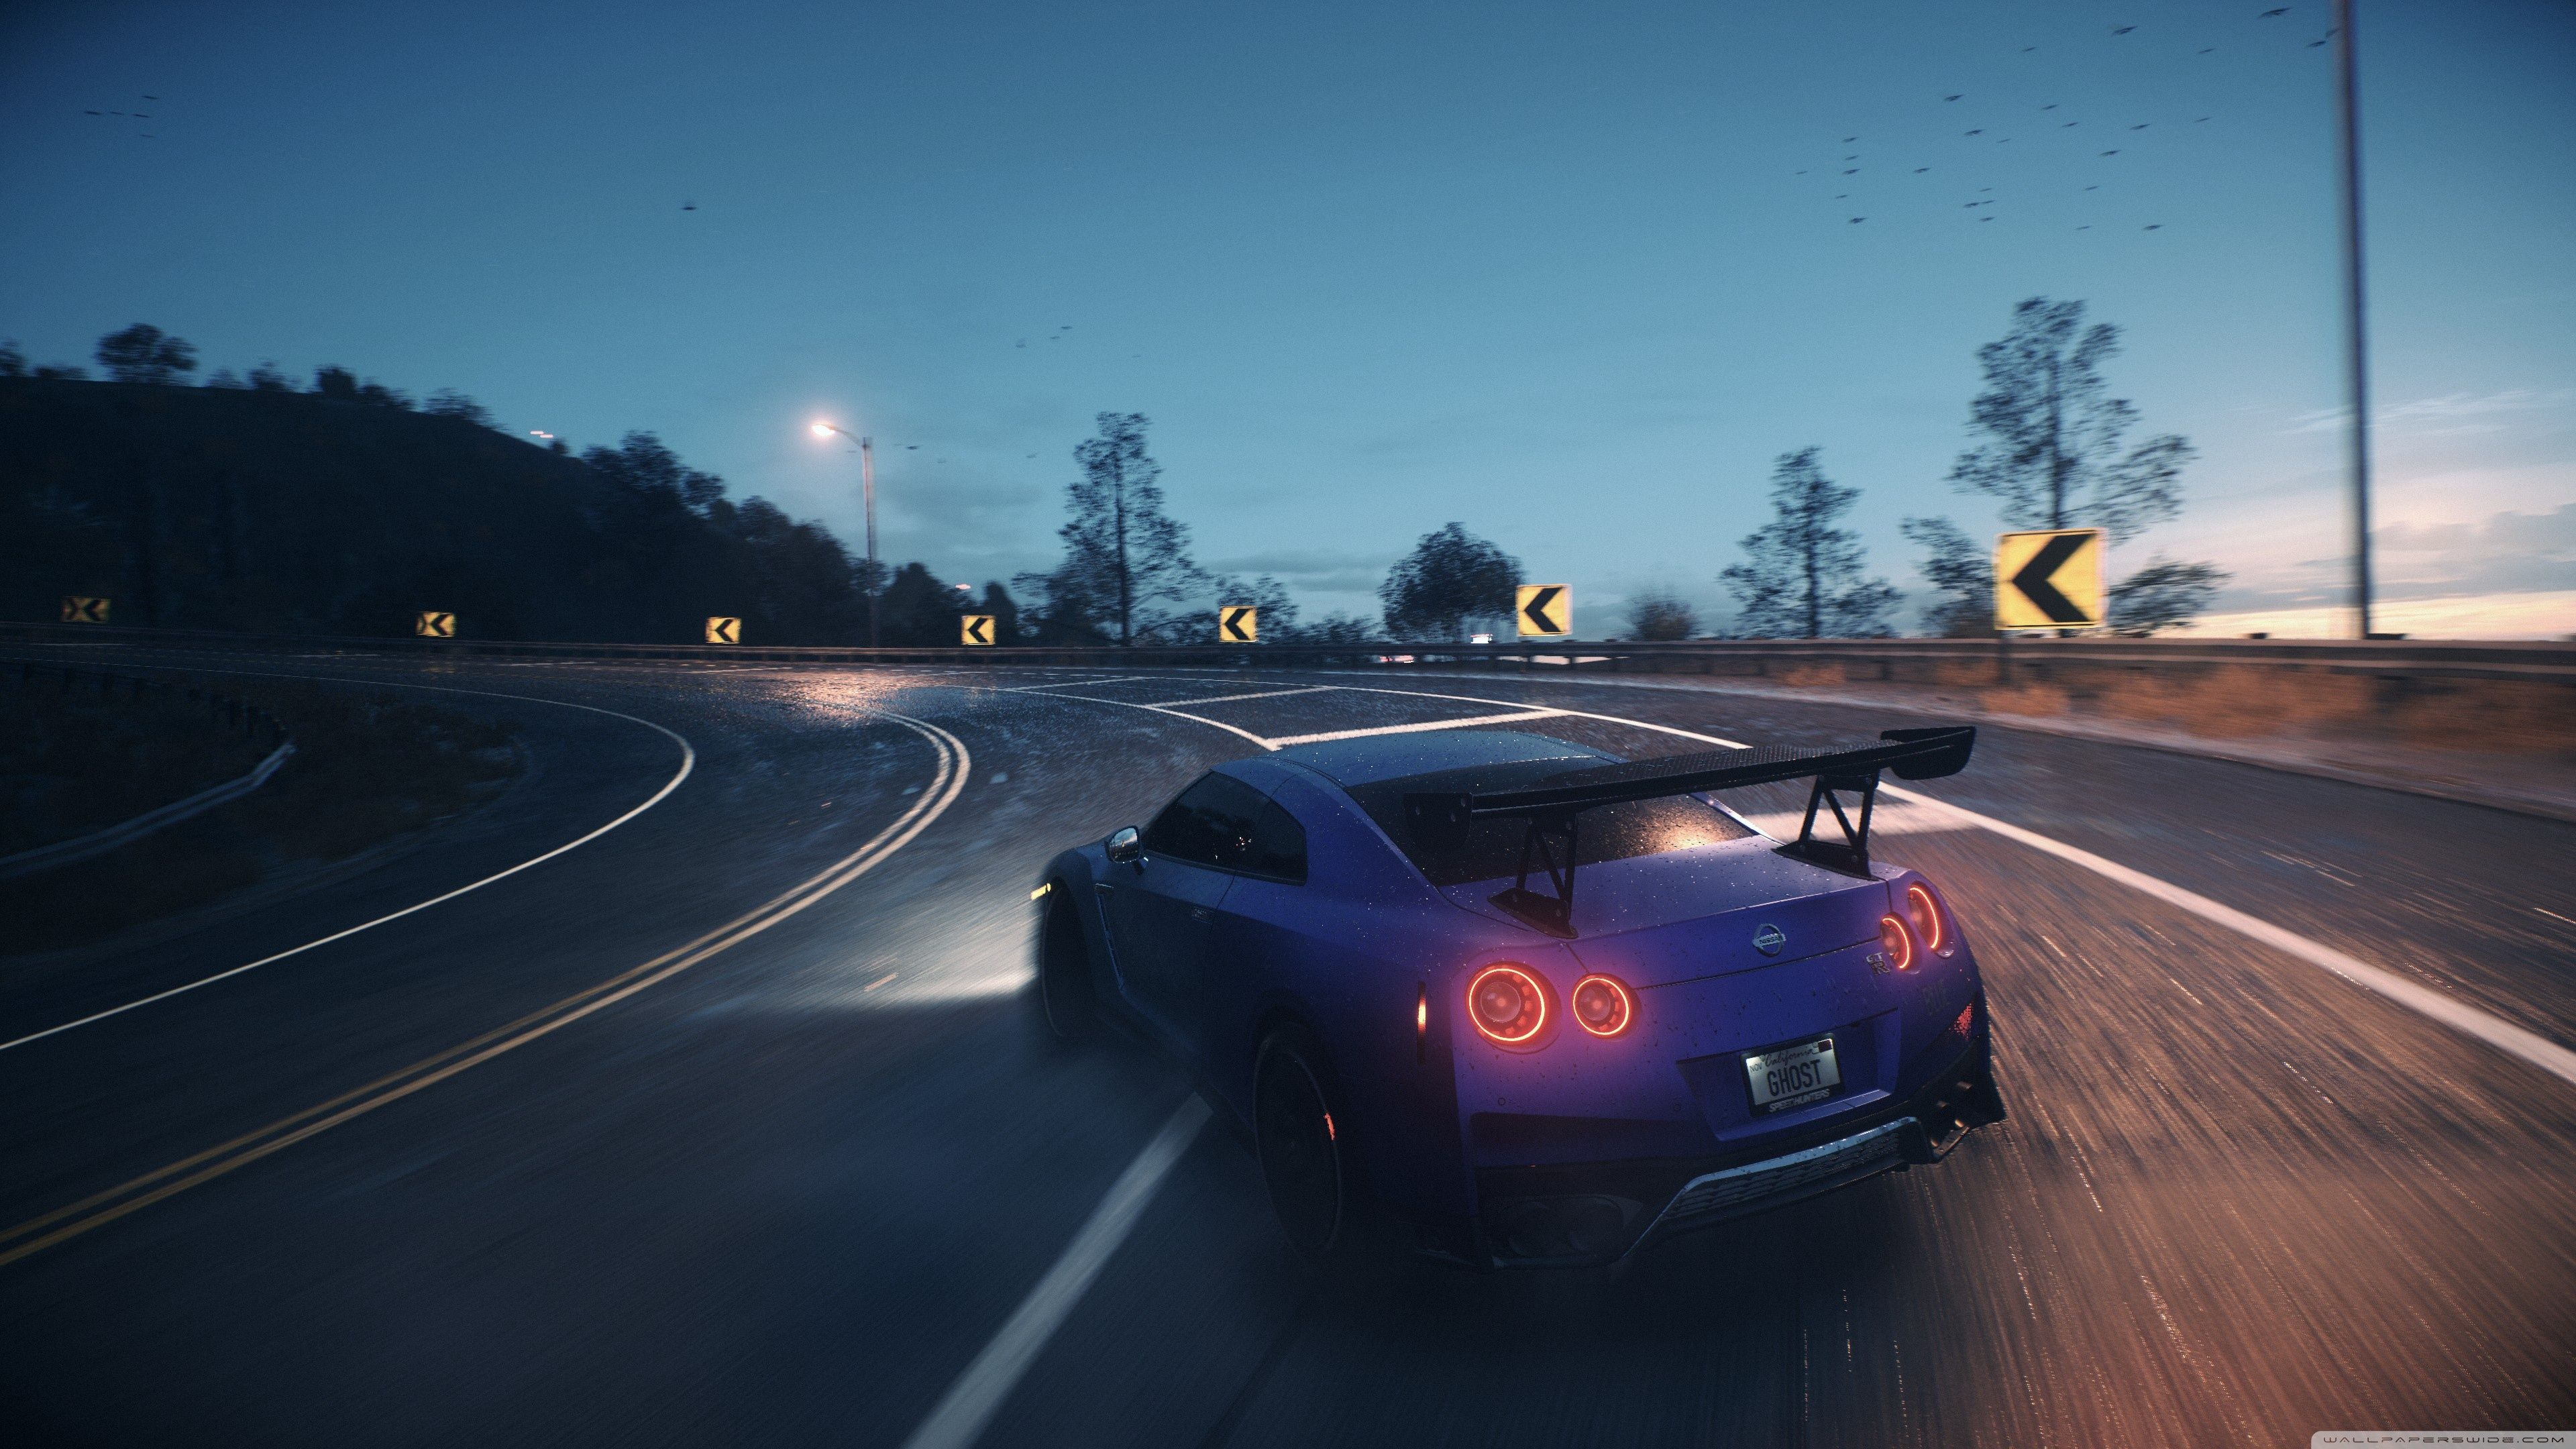 Blue Gtr Wallpapers Top Free Blue Gtr Backgrounds